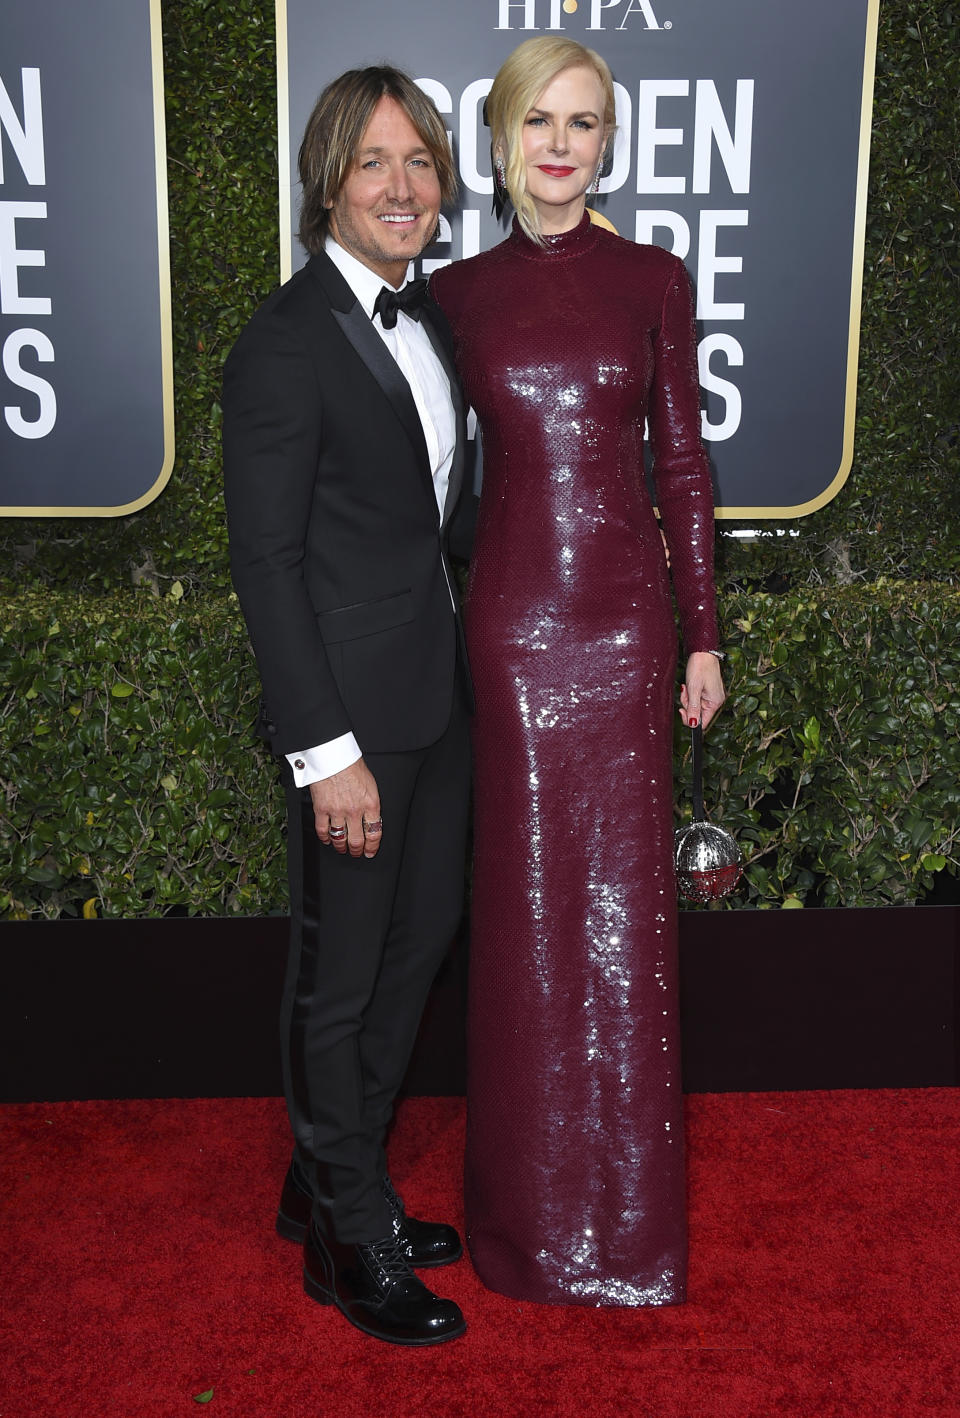 Keith Urban, left, and Nicole Kidman arrive at the 76th annual Golden Globe Awards at the Beverly Hilton Hotel on Sunday, Jan. 6, 2019, in Beverly Hills, Calif.